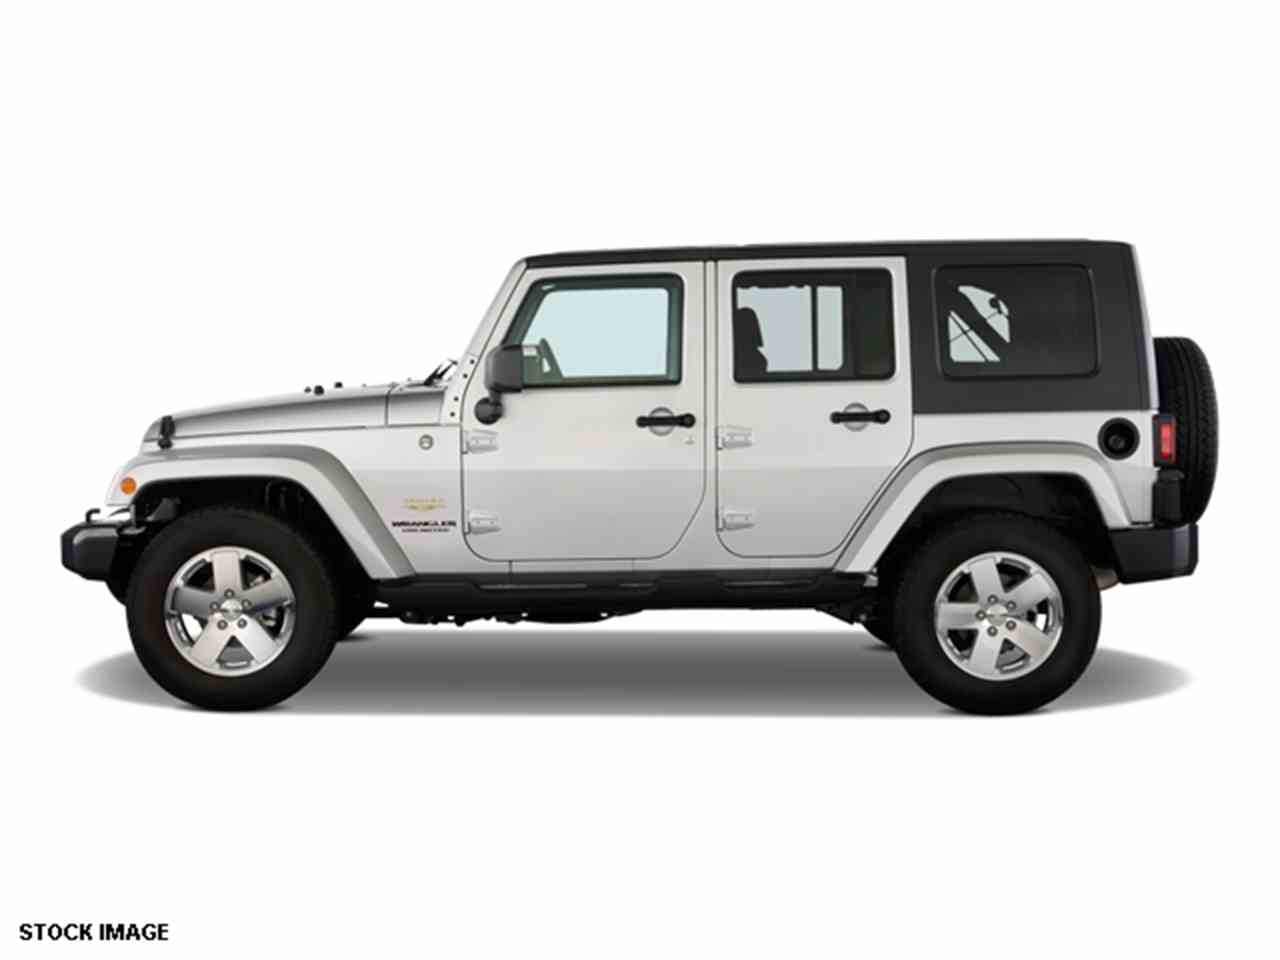 Large Picture of '09 Jeep Wrangler located in Ohio - $17,000.00 Offered by Cincinnati Auto Wholesale - LWMR